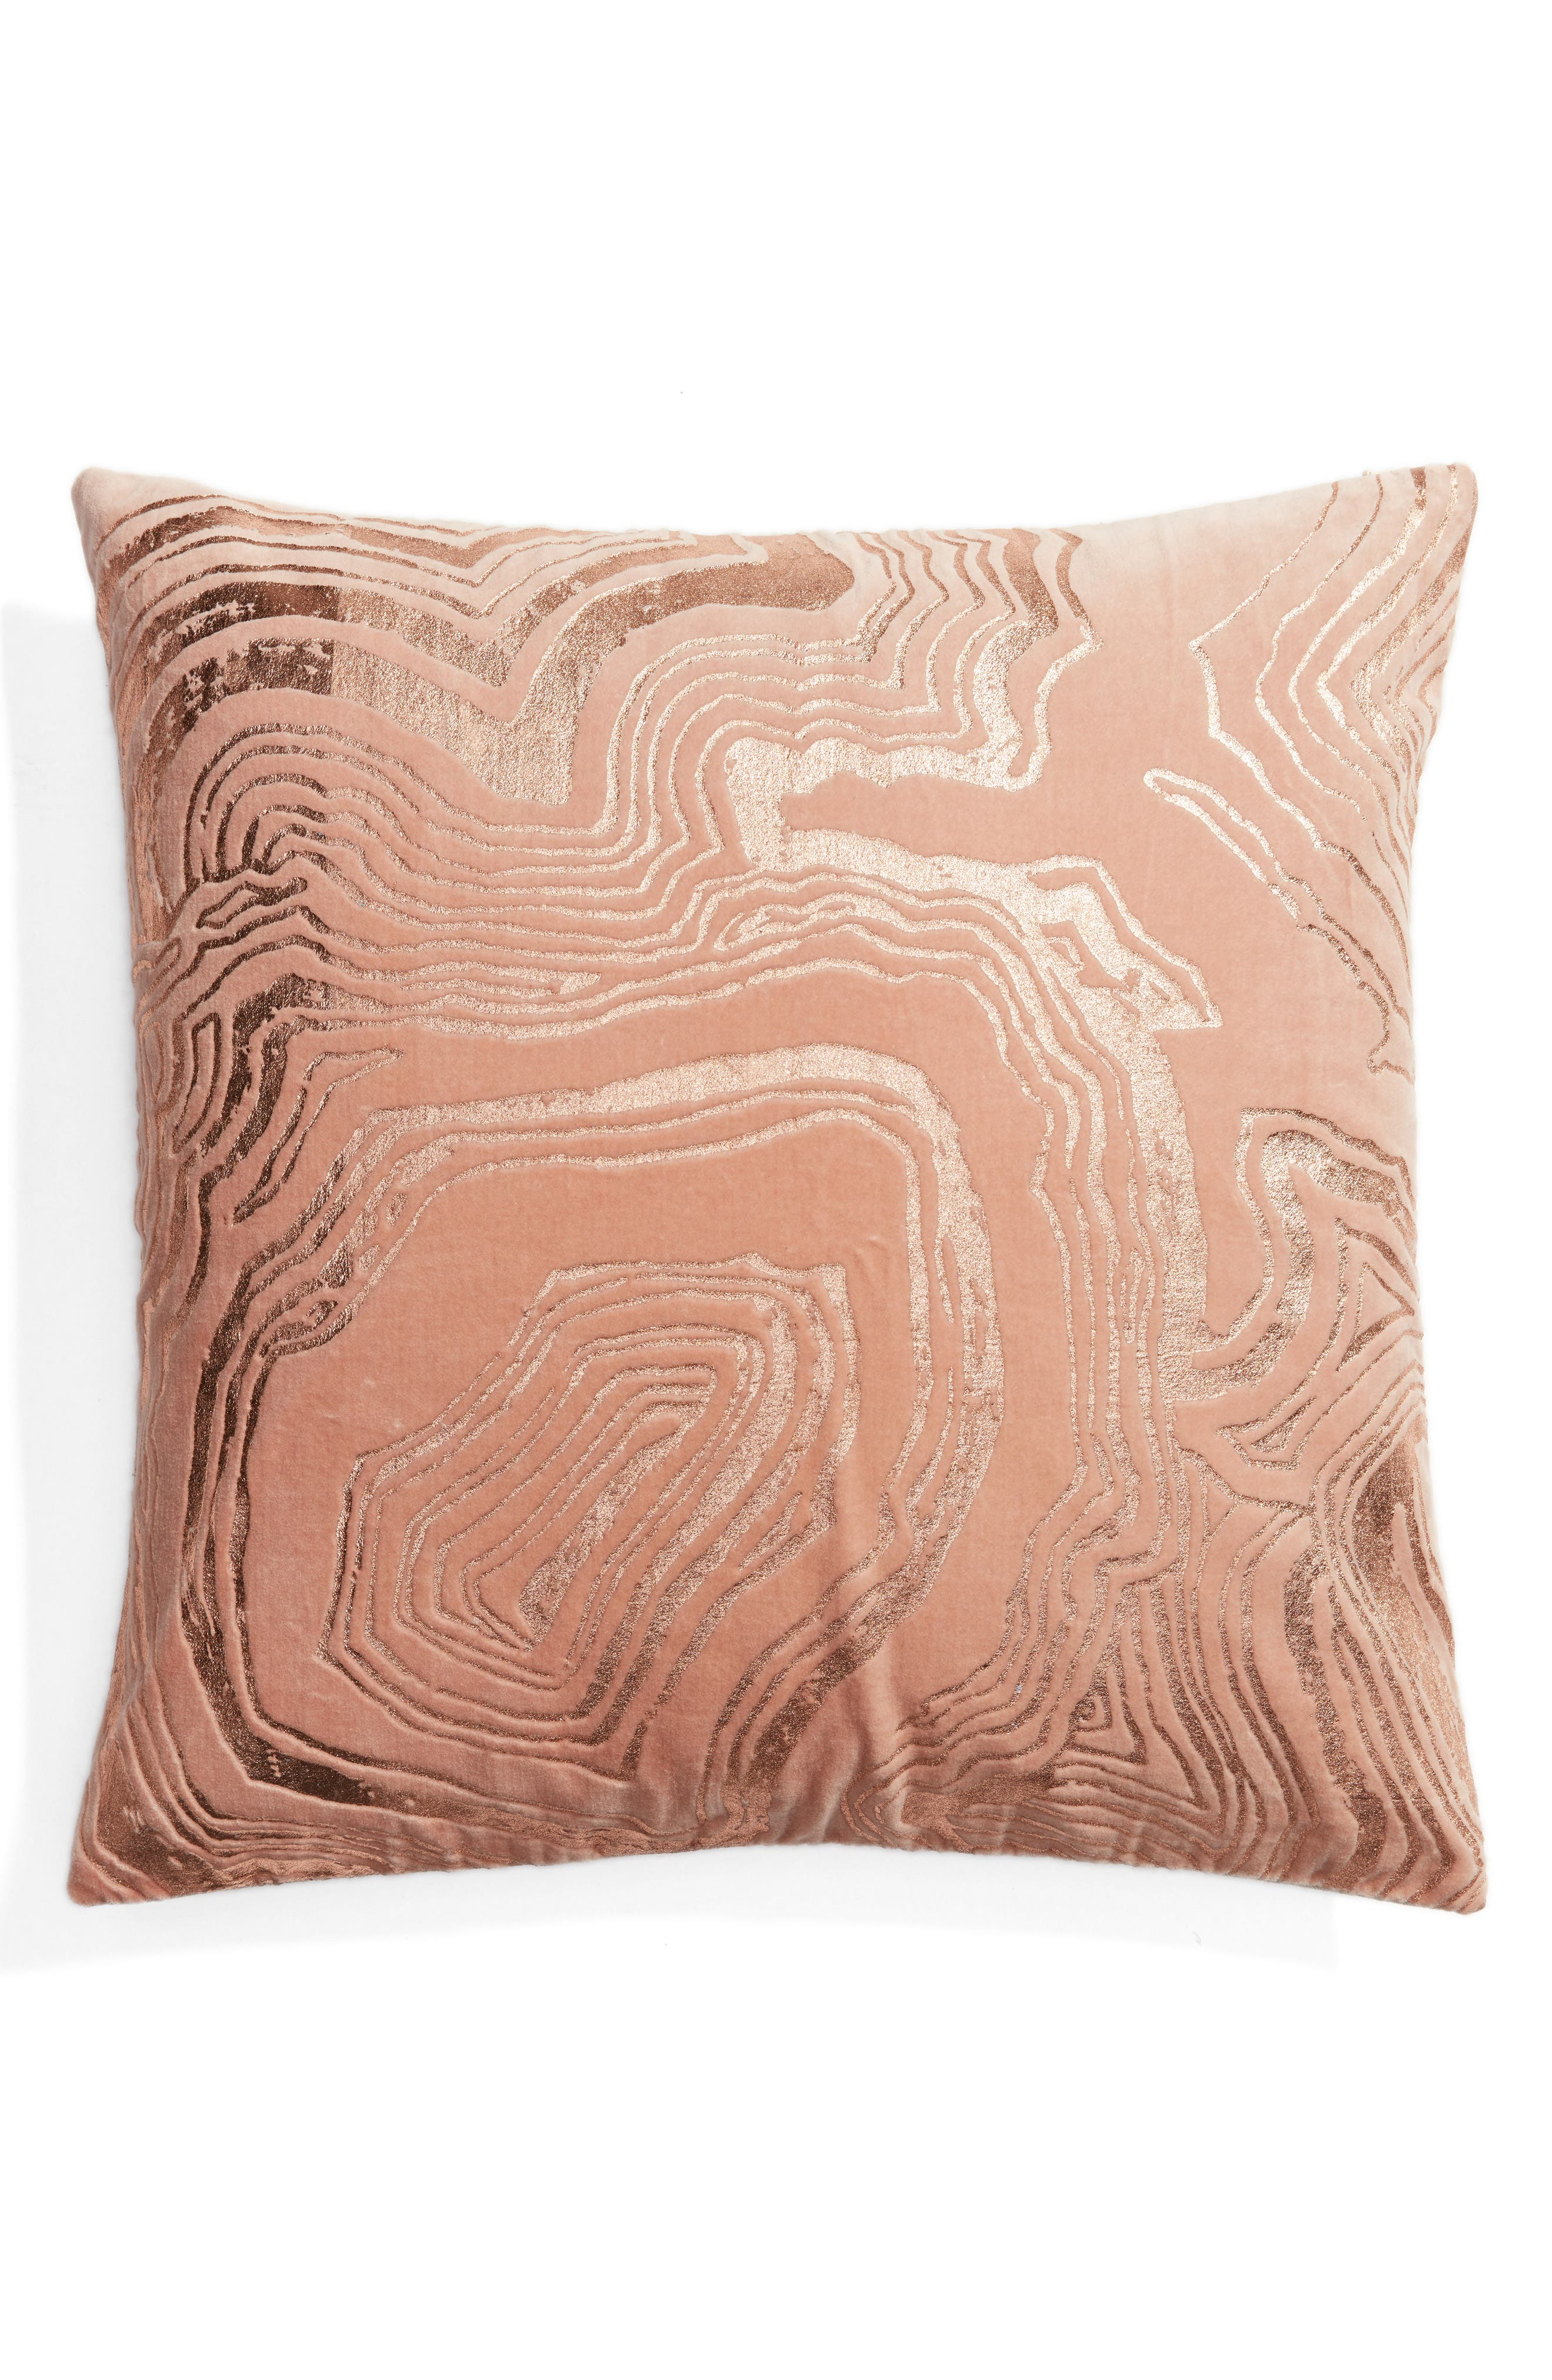 Nordstrom at Home Foil Print Pillow